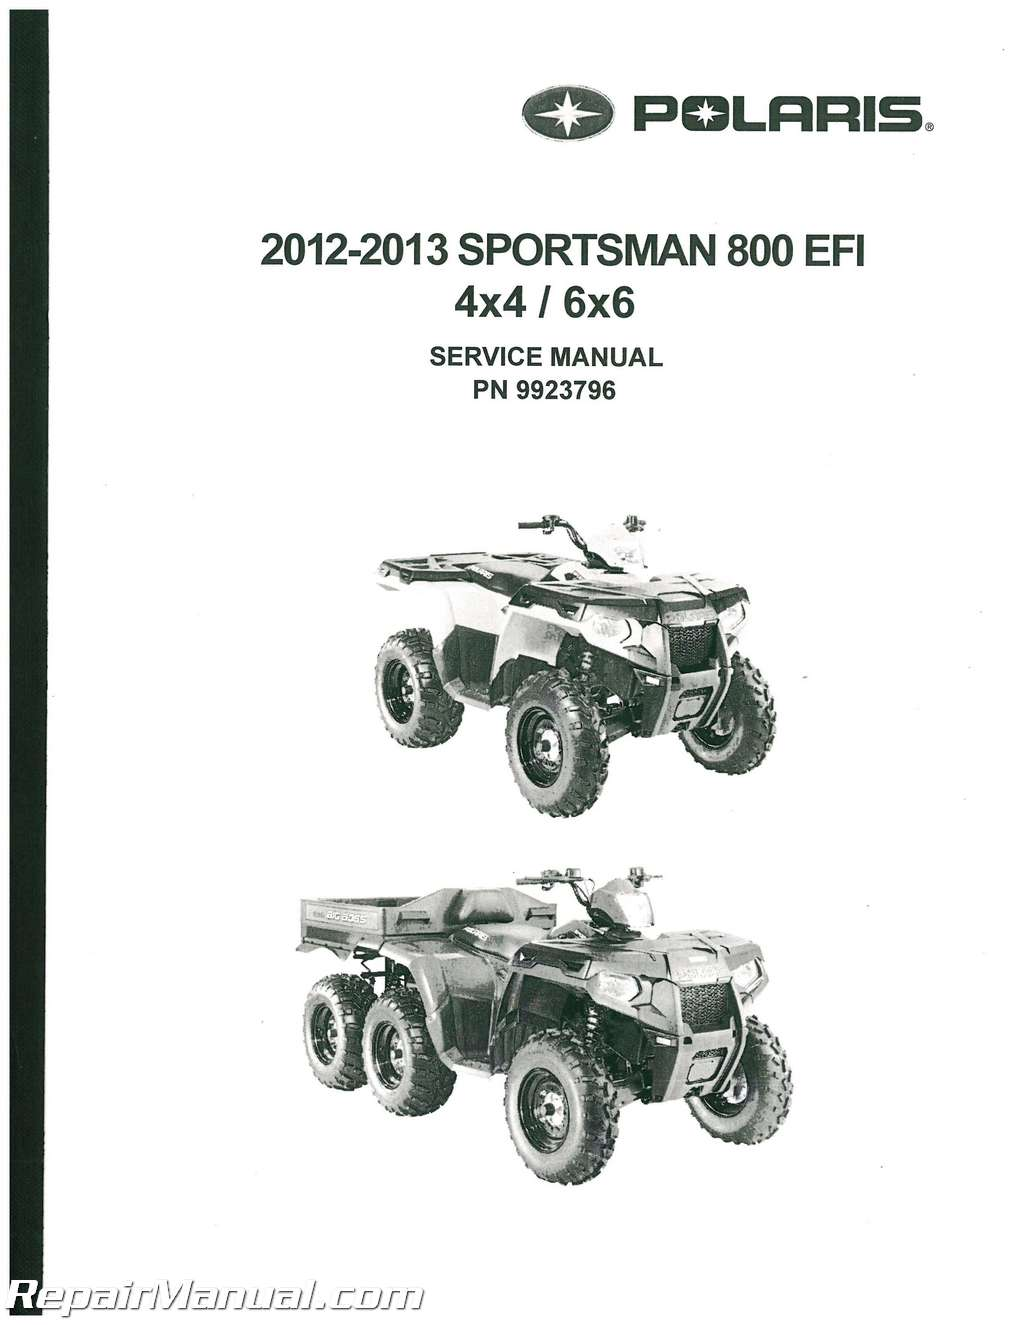 Bestseller: 1995 Polaris Sportsman Service Manual